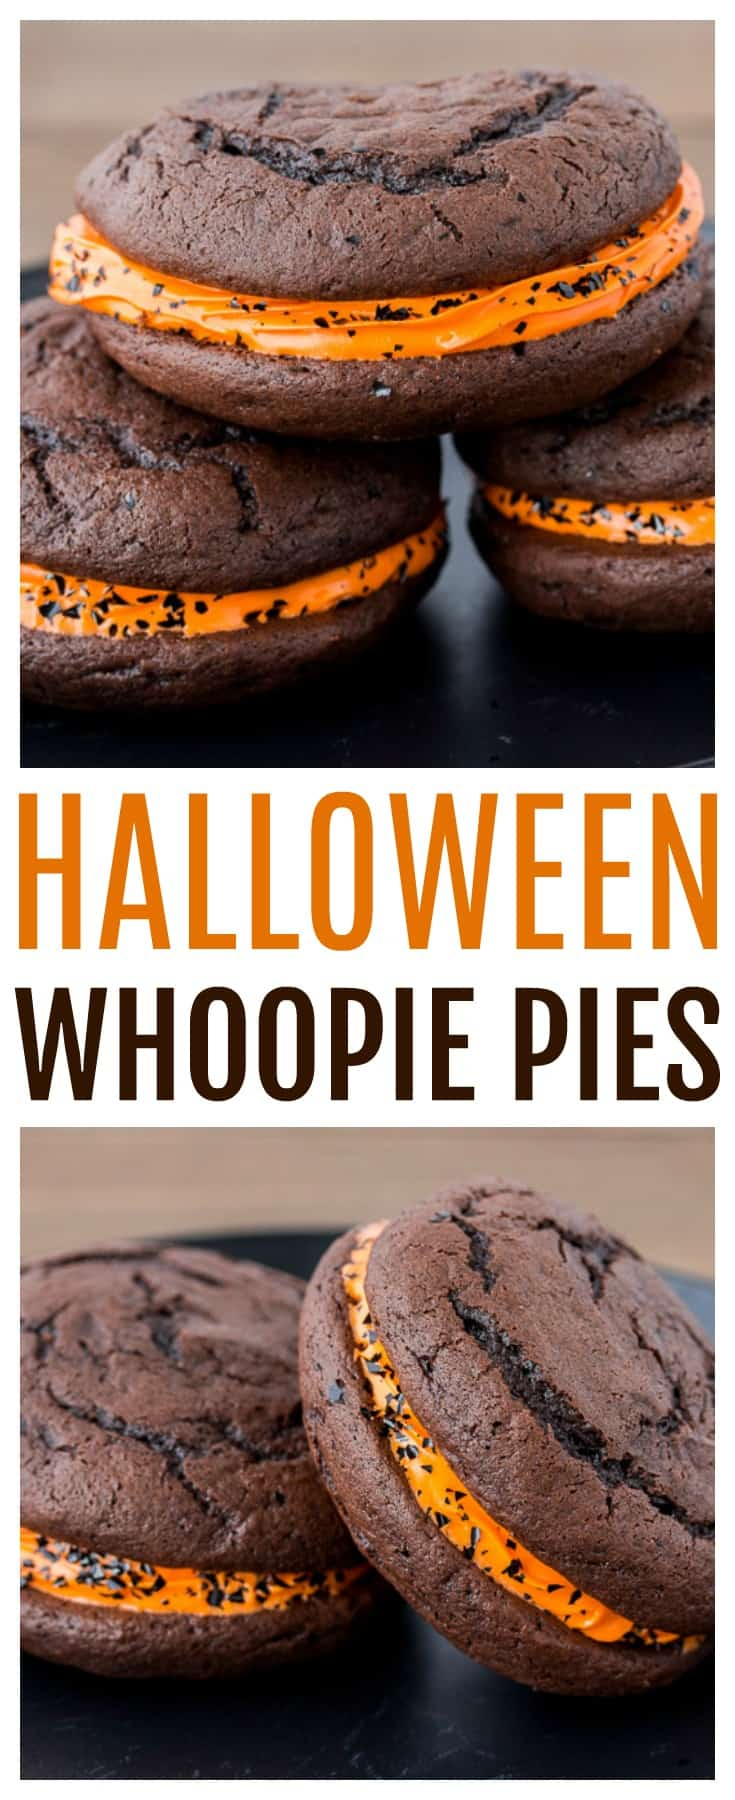 Halloween Whoopie Pies - devils food cake and orange icing make this dessert recipe perfect for the holiday! Included is 3 different decorating ideas to make all your little ghouls happy this halloween! | #dlbrecipes #halloween #halloweenbaking #halloweendessert